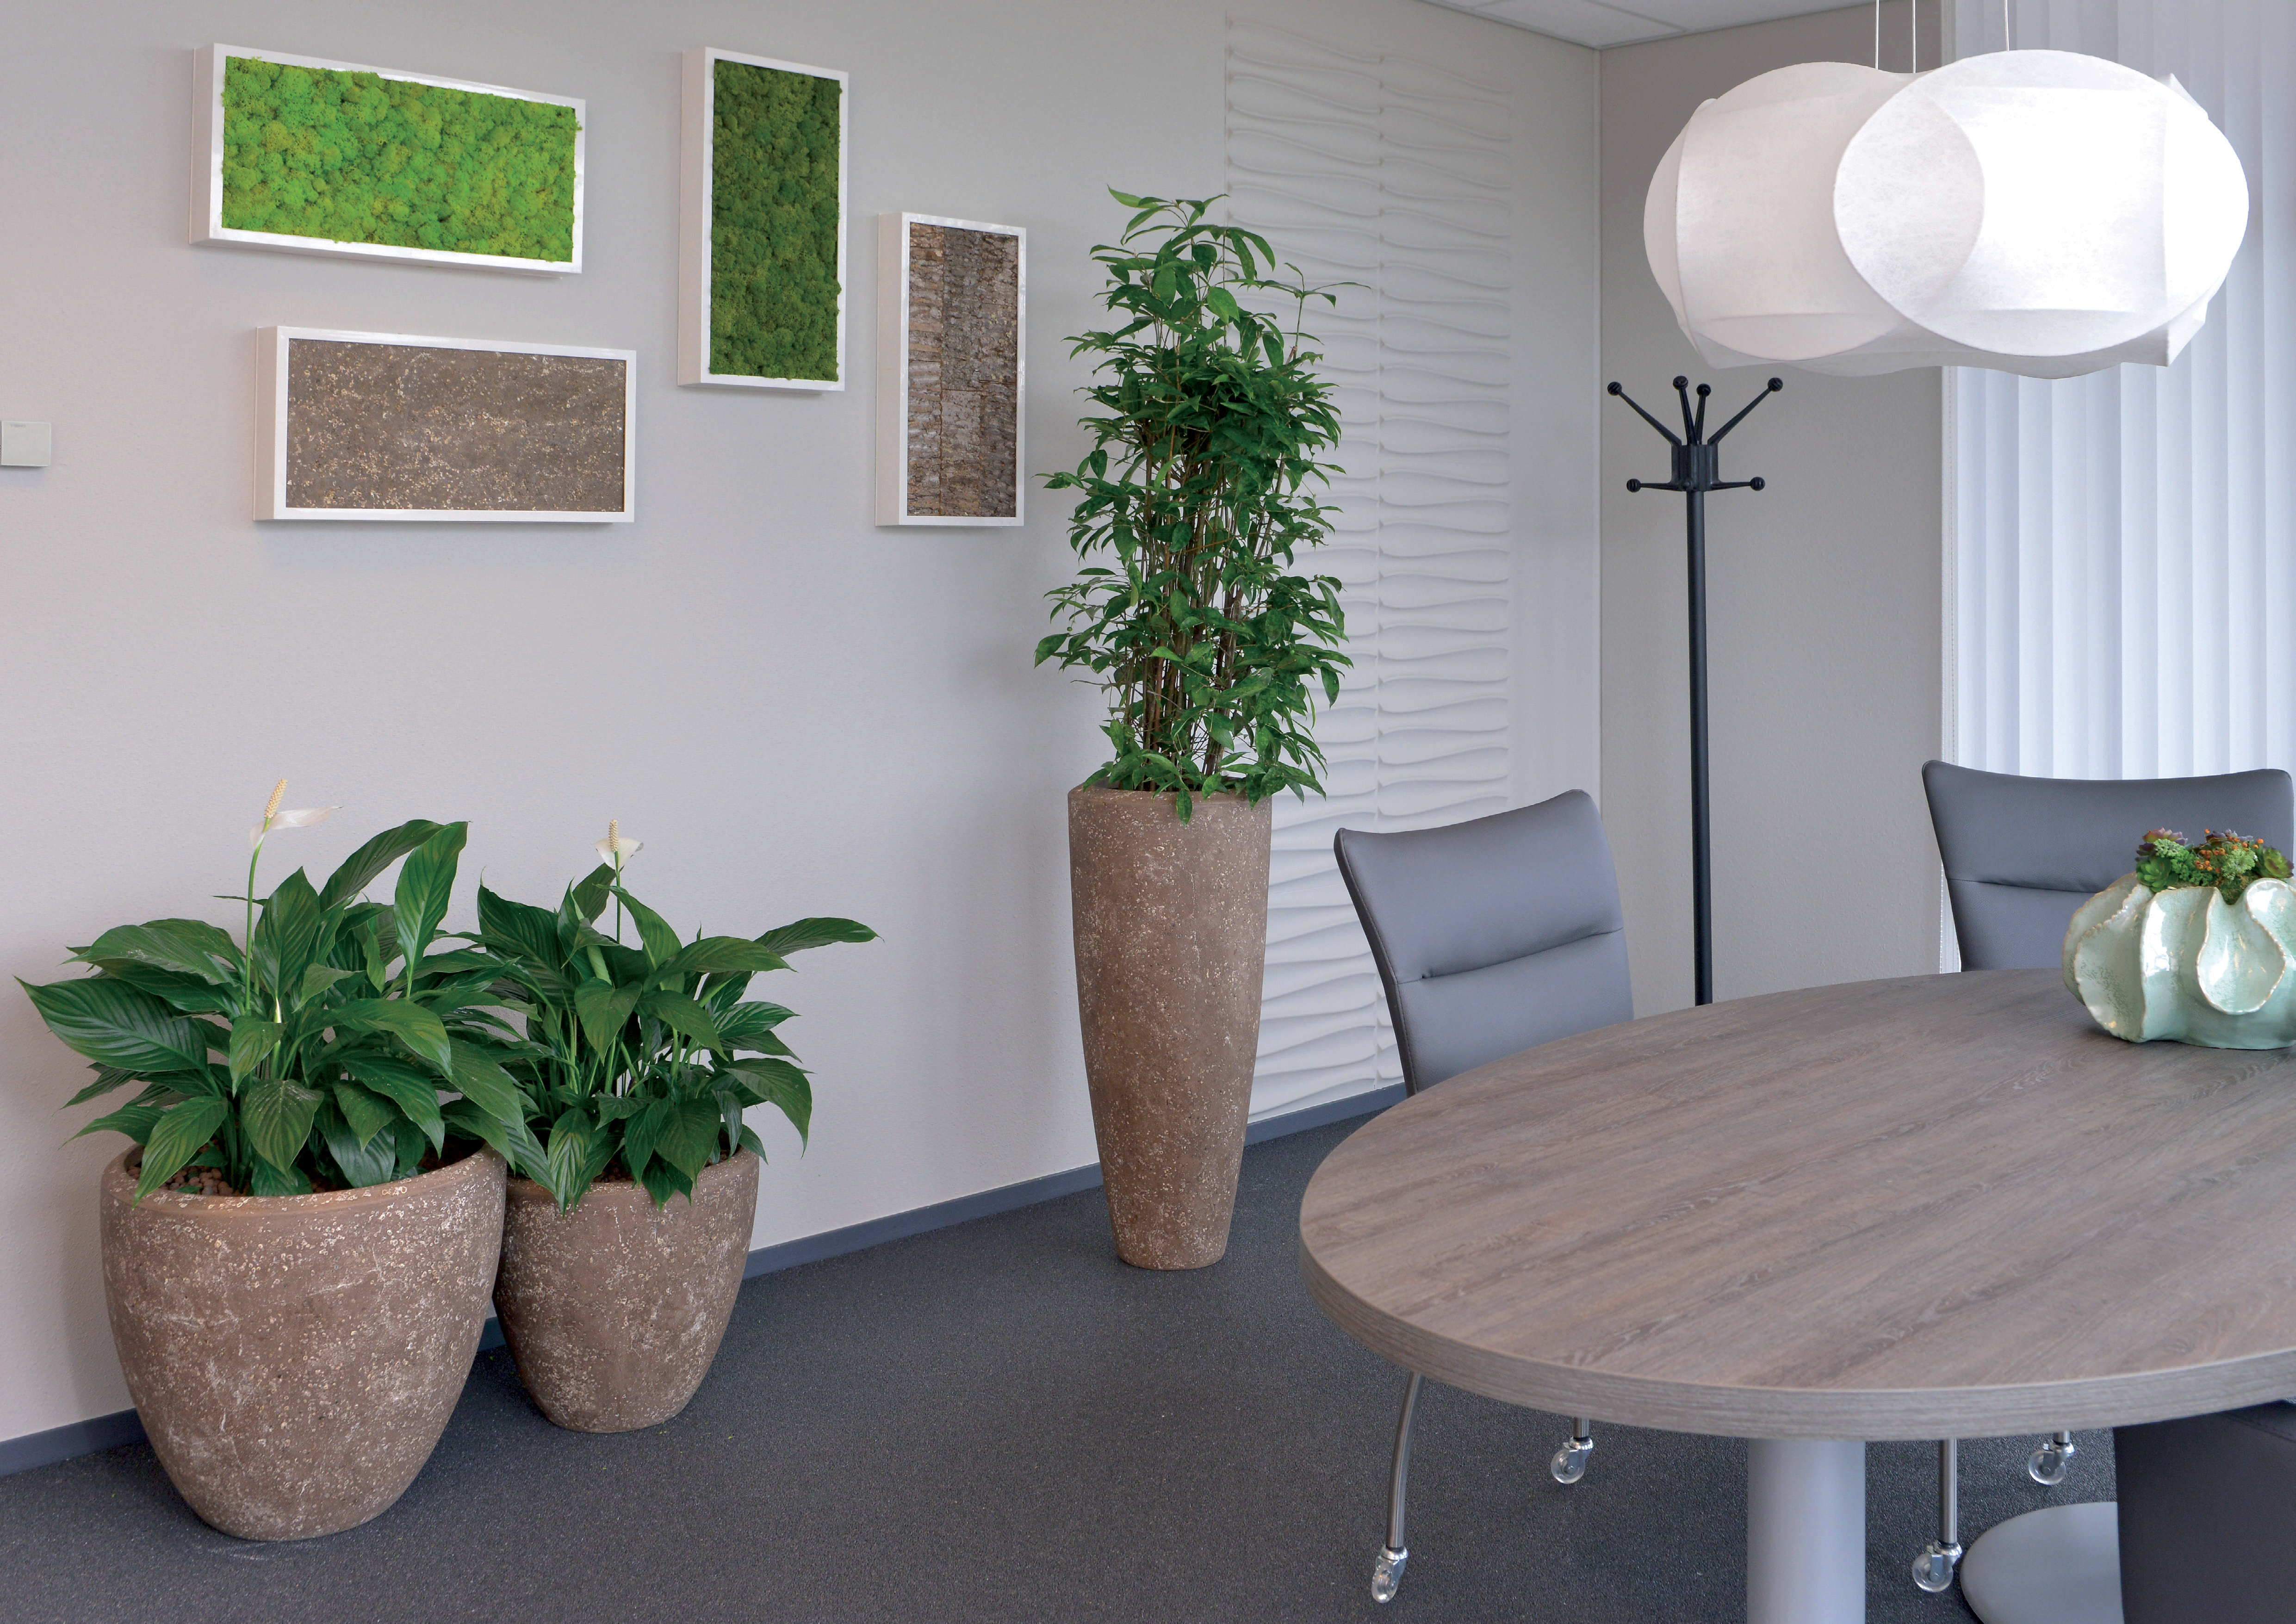 Merveilleux Photos And Video Interior Office Plants